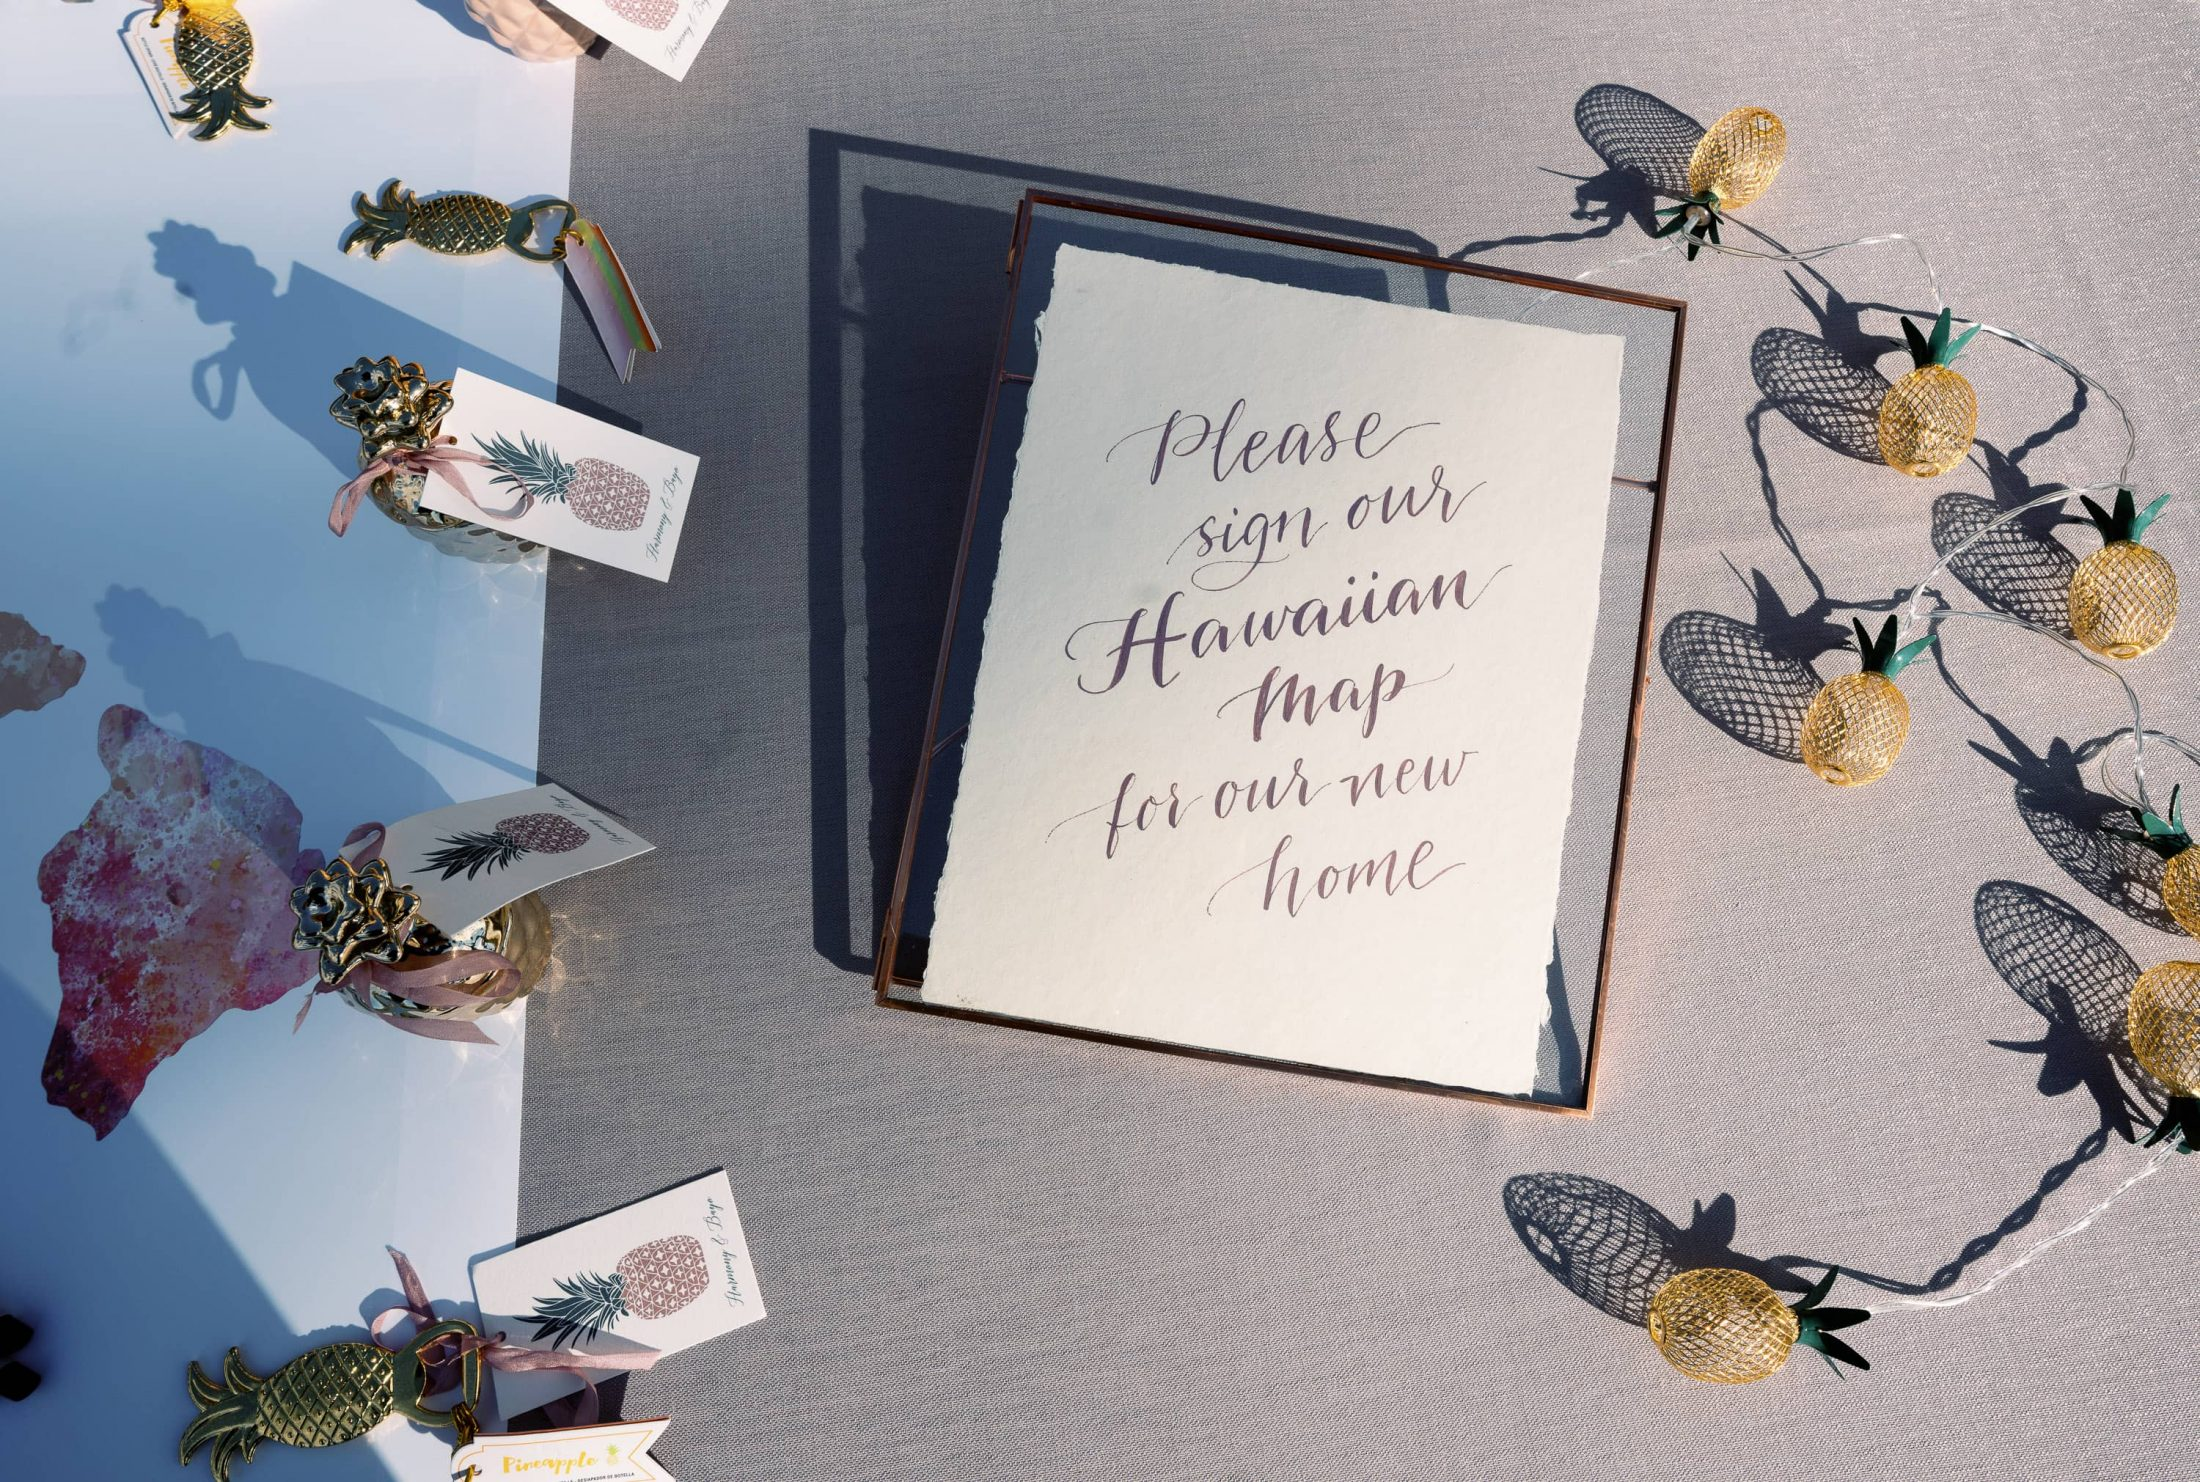 """Text: """"Please sign our Hawaiian map for our new home"""" - unique guestbook idea at Maui wedding at Four Seasons Resort Maui in Wailea, Hawaii 